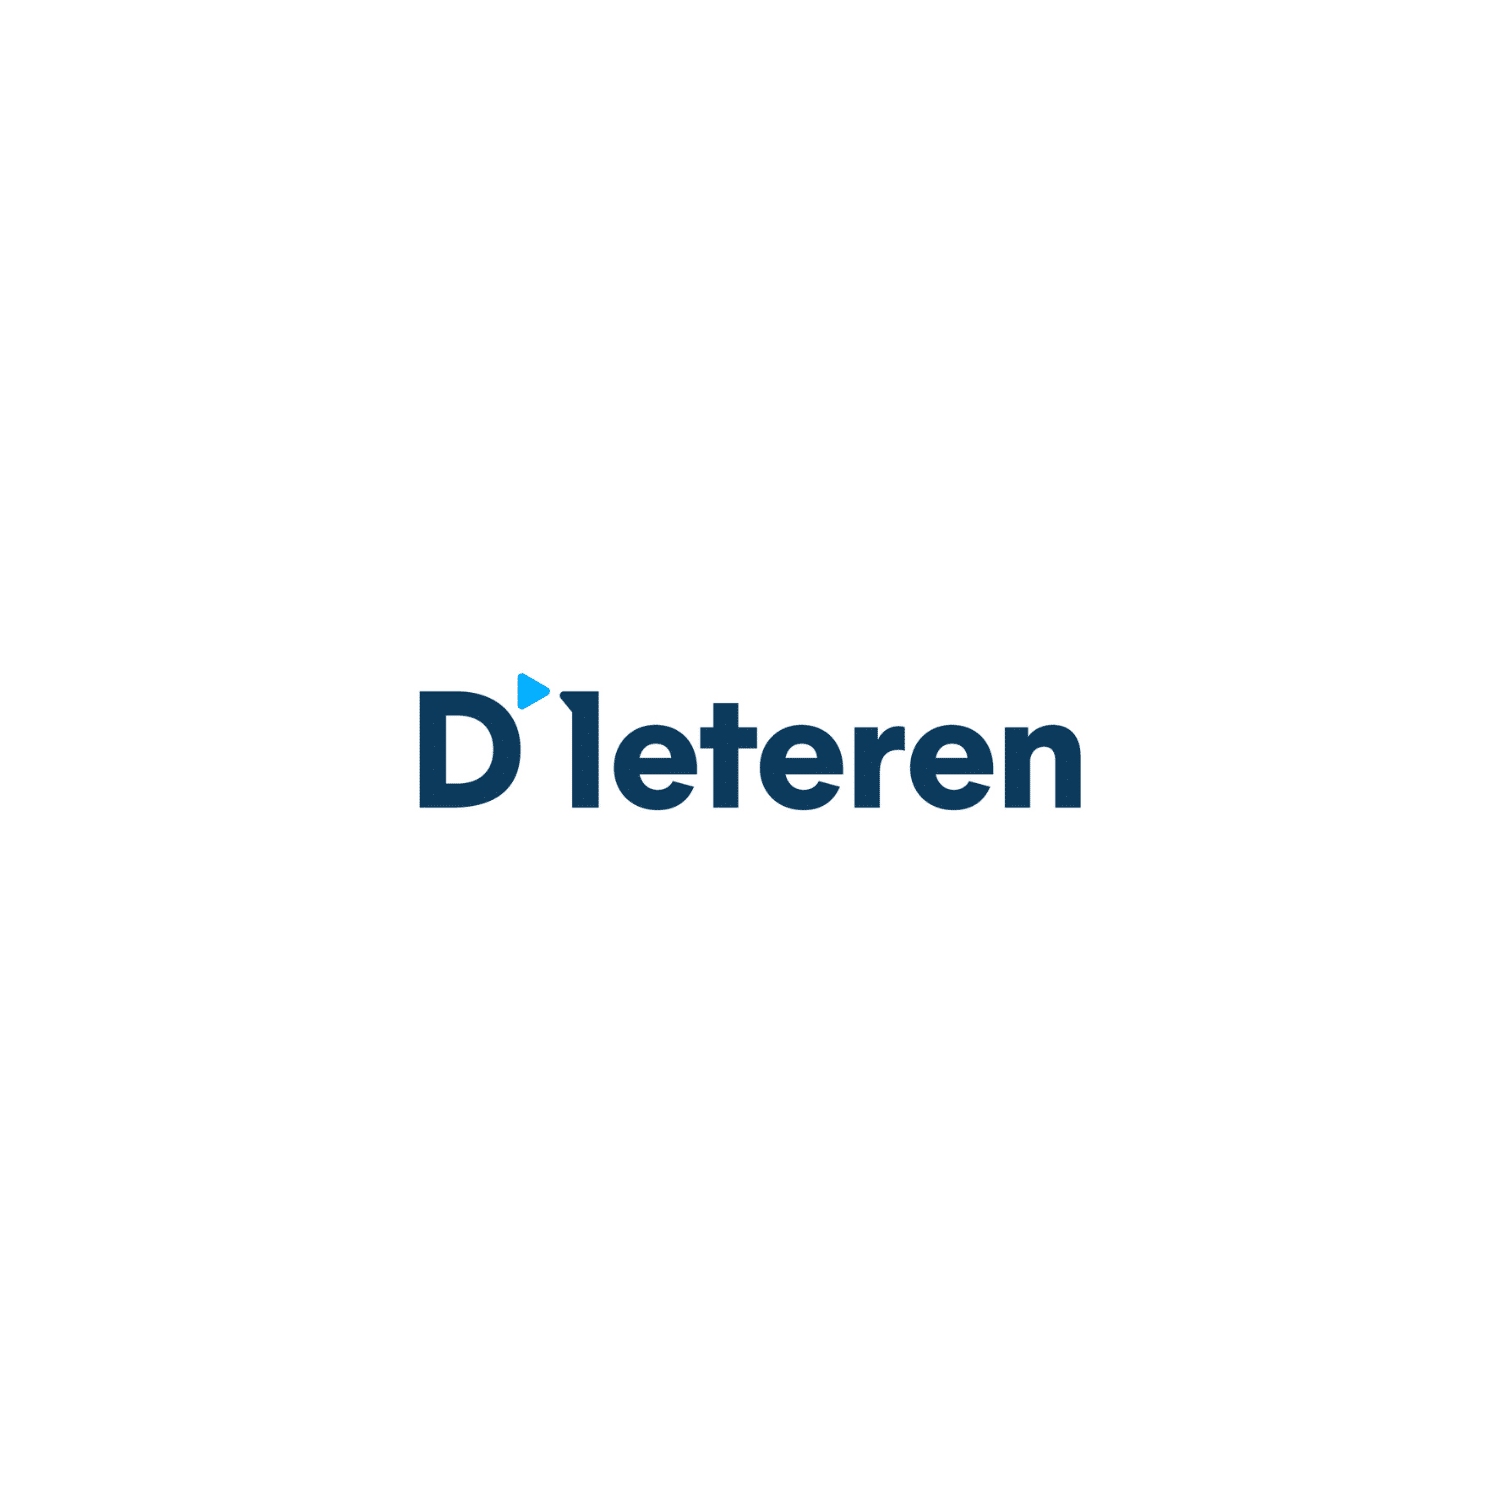 D'Ieteren Automotive Chooses Vee24 To Connect With Customers Face-to-Face At Virtual 2021 Brussels Motor Show